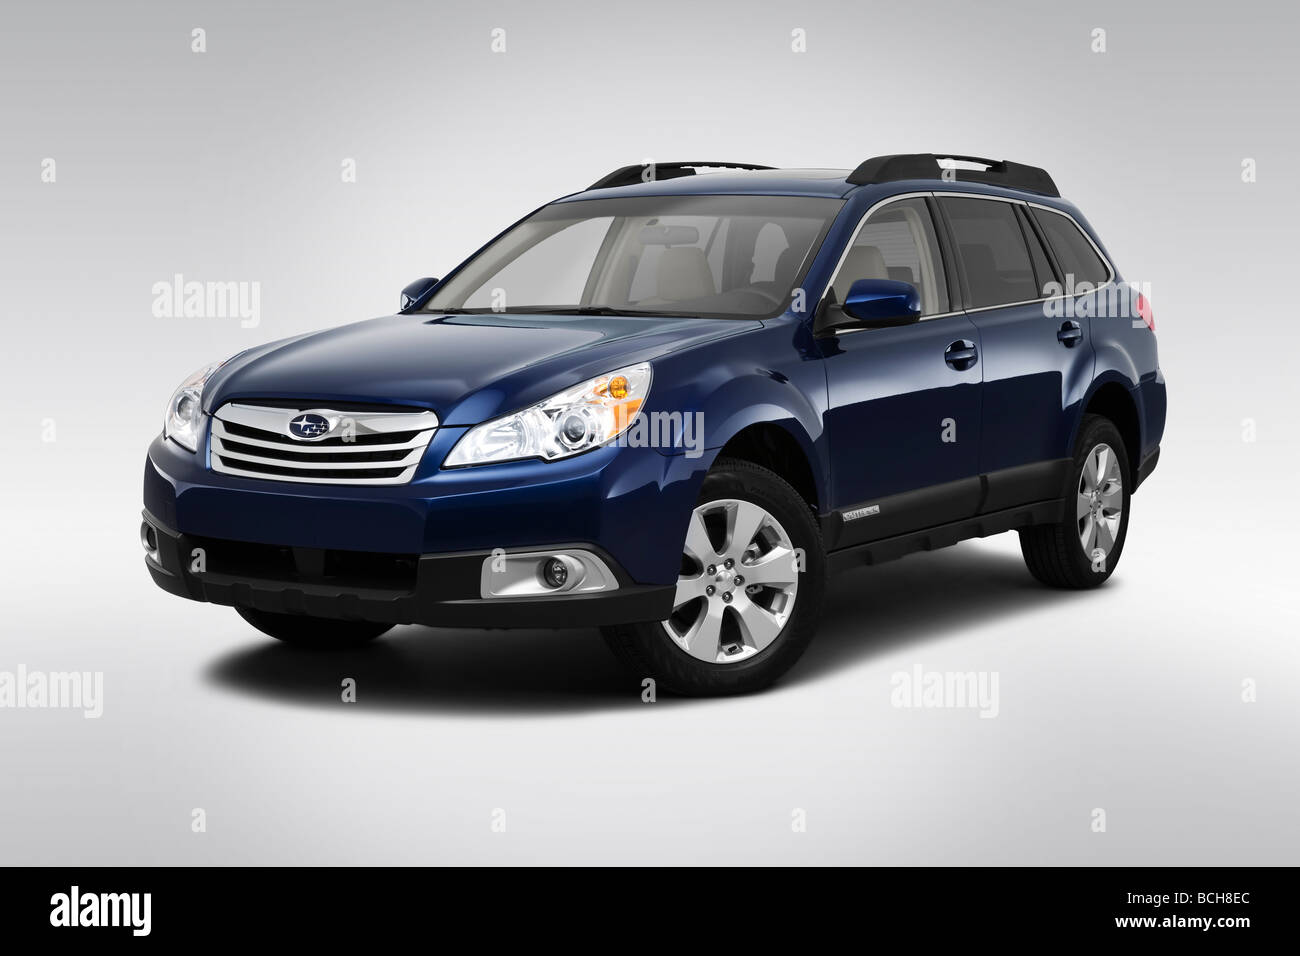 2010 subaru outback blue gallery hd cars wallpaper 2010 subaru outback 25i limited in blue front angle view stock 2010 subaru outback 25i limited vanachro Choice Image